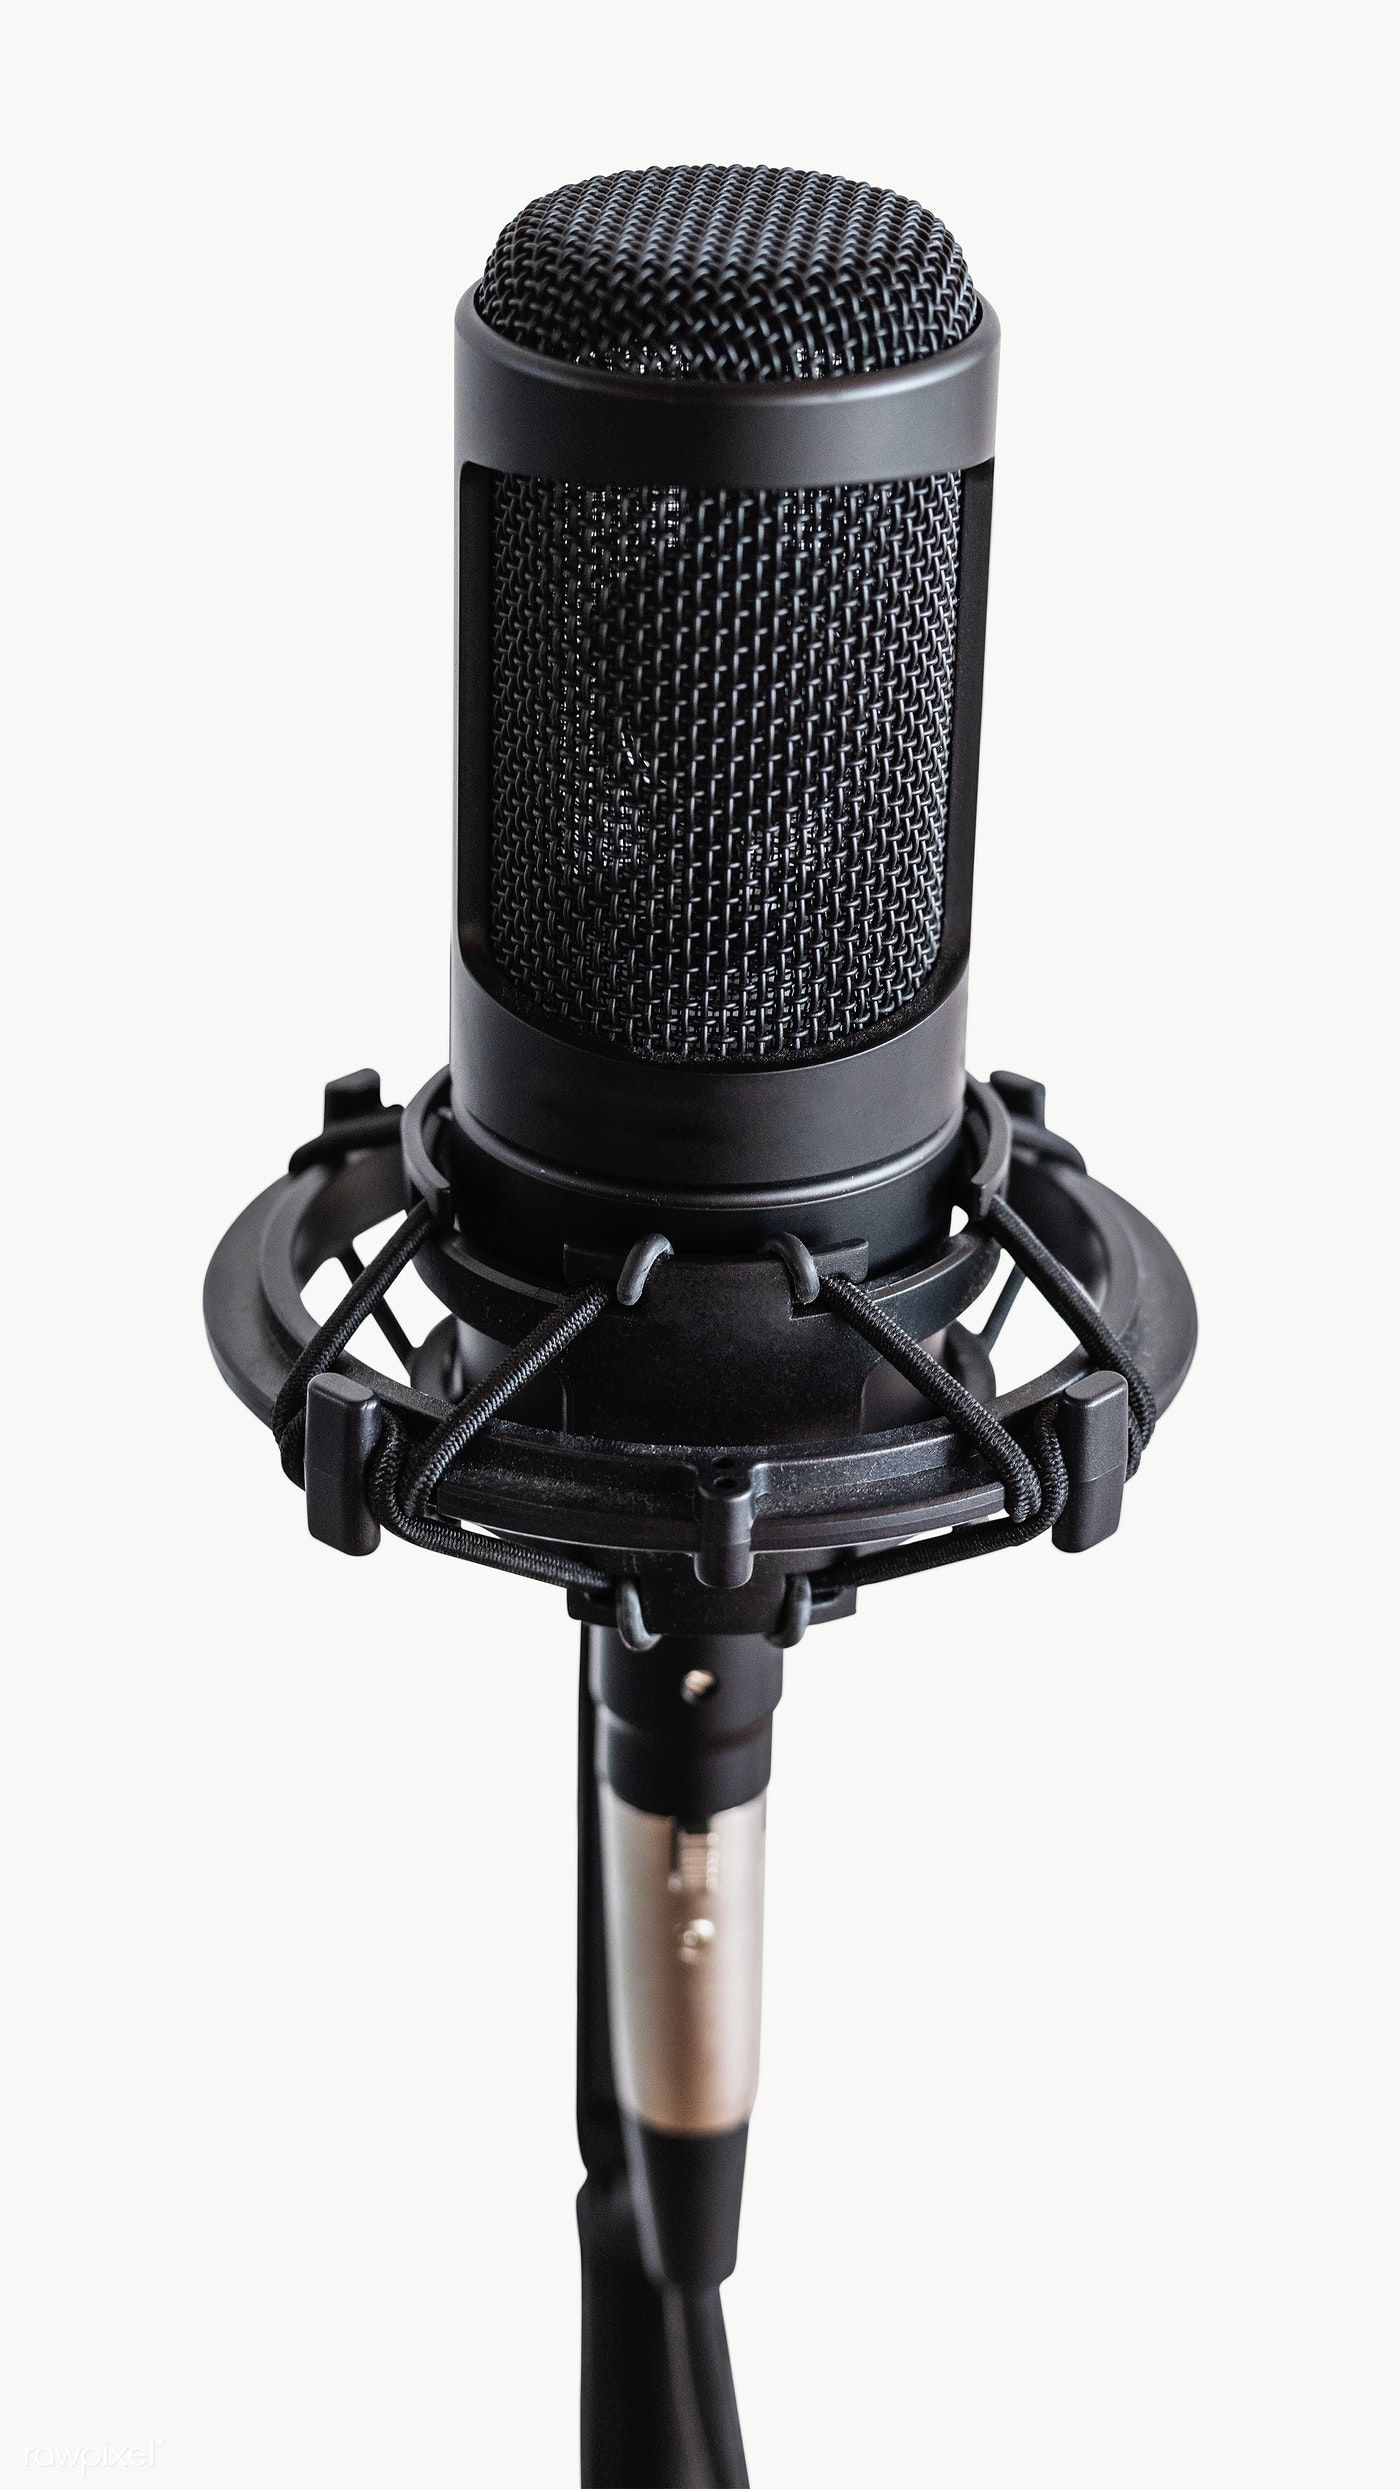 Professional Condenser Microphone In A Studio Premium Image By Rawpixel Com Teddy Rawpixel Microphone Microphone Images Condensation